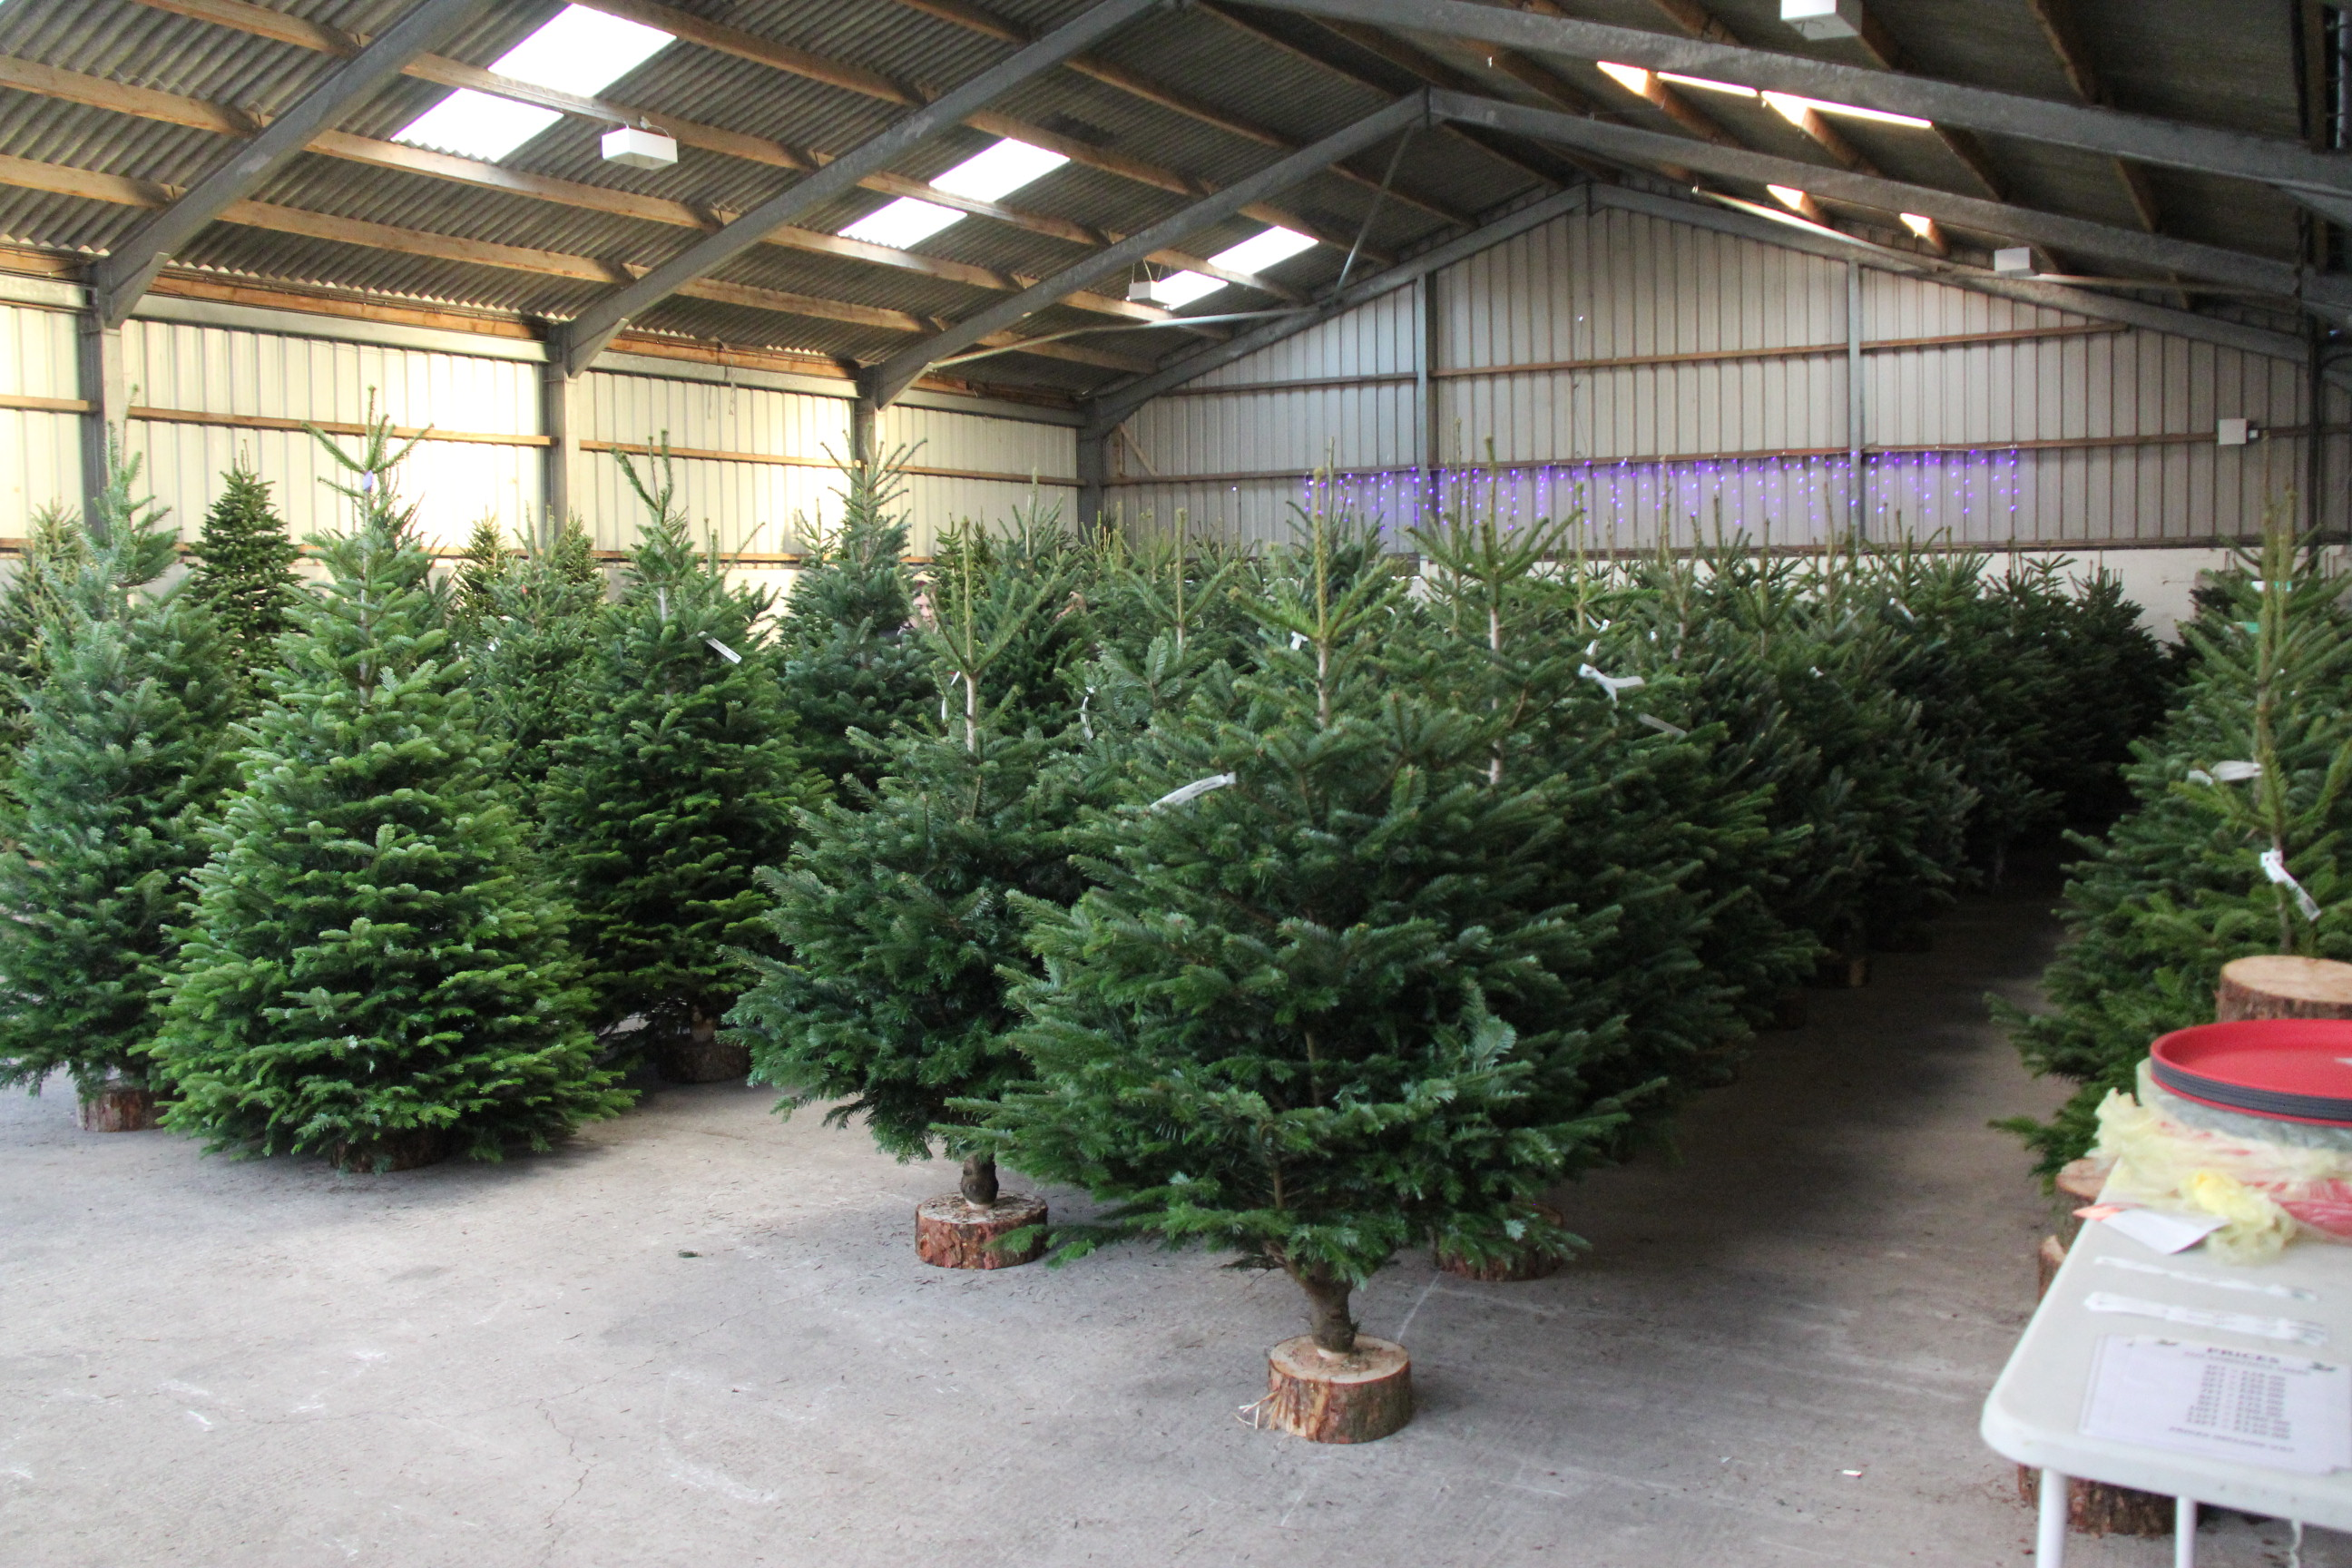 Massams Supplies at Shirdley Hill are the largest supplier of Christmas trees in the area, and literally 000's of trees will ship from there during December.    This year's Christmas Barn has an amazing selection of quality trees, including Nordman Fir, Fraser Fir, Norway Spruce, even Living Trees....